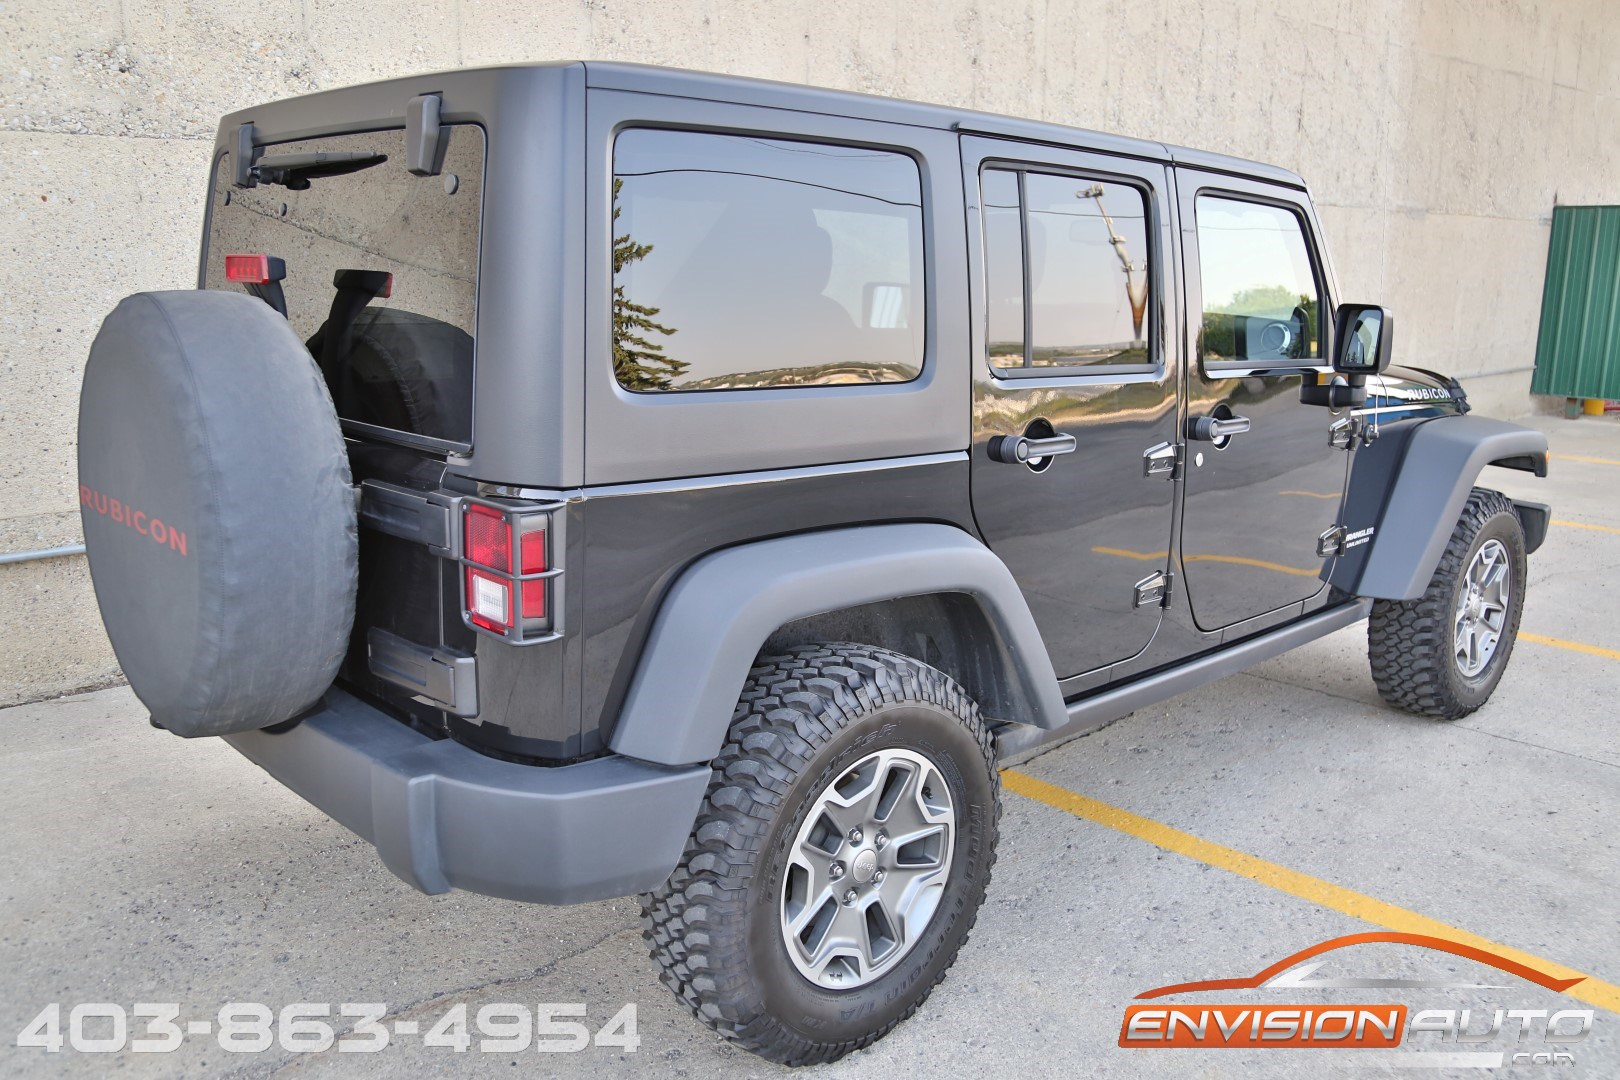 2014 jeep wrangler unlimited rubicon 4 x 4 6 speed manual navi envision auto calgary. Black Bedroom Furniture Sets. Home Design Ideas